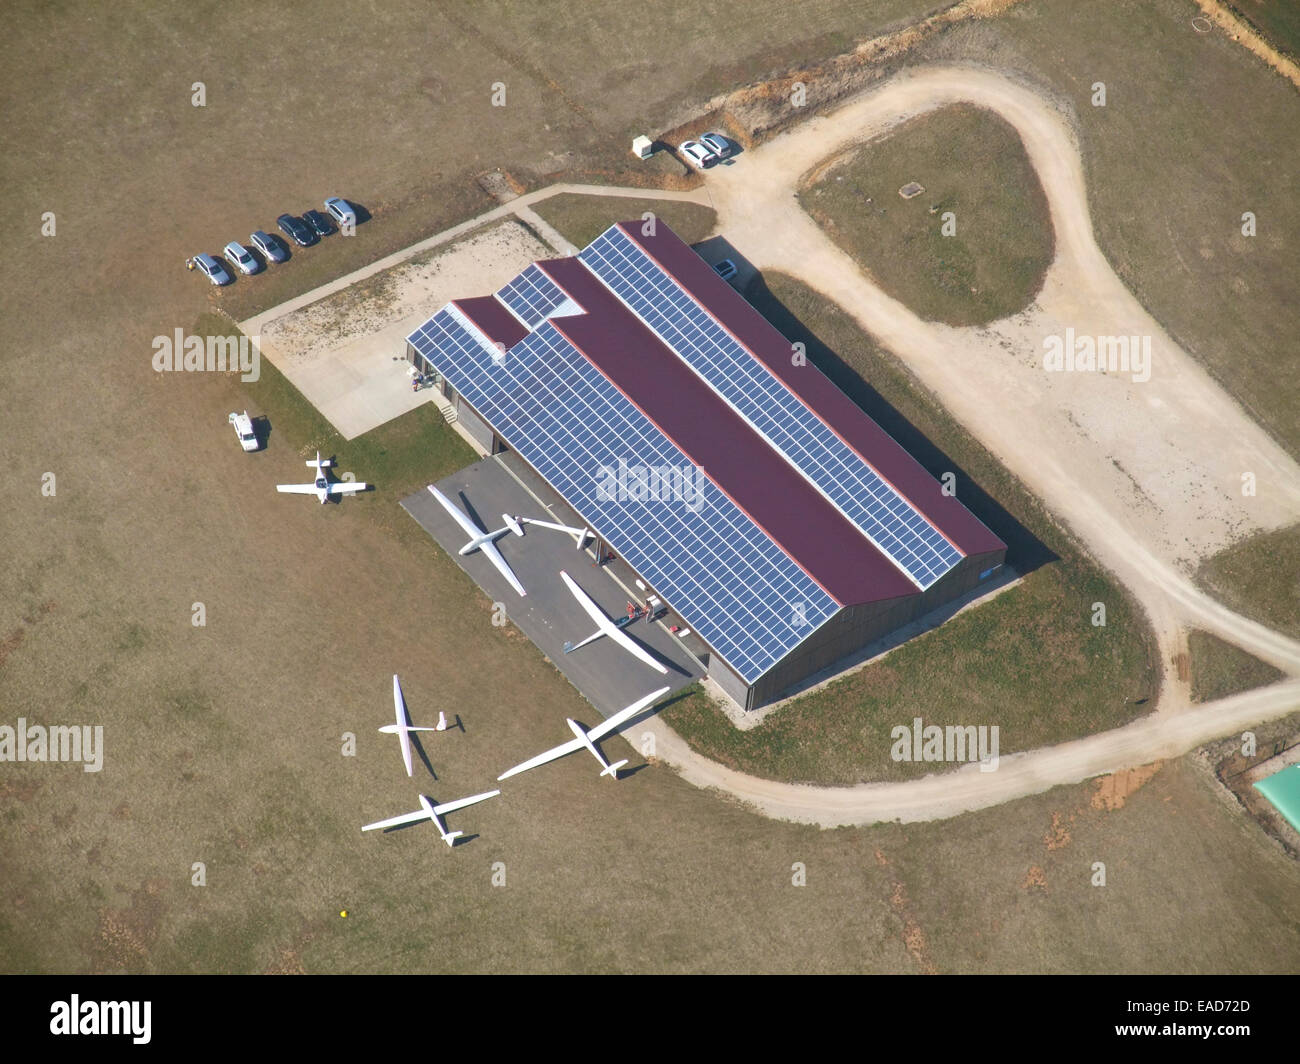 Aerial view of gliders hangar with photovoltaic panels on roof, Pont Saint Vincent aerodrome, Meurthe et Moselle, Stock Photo